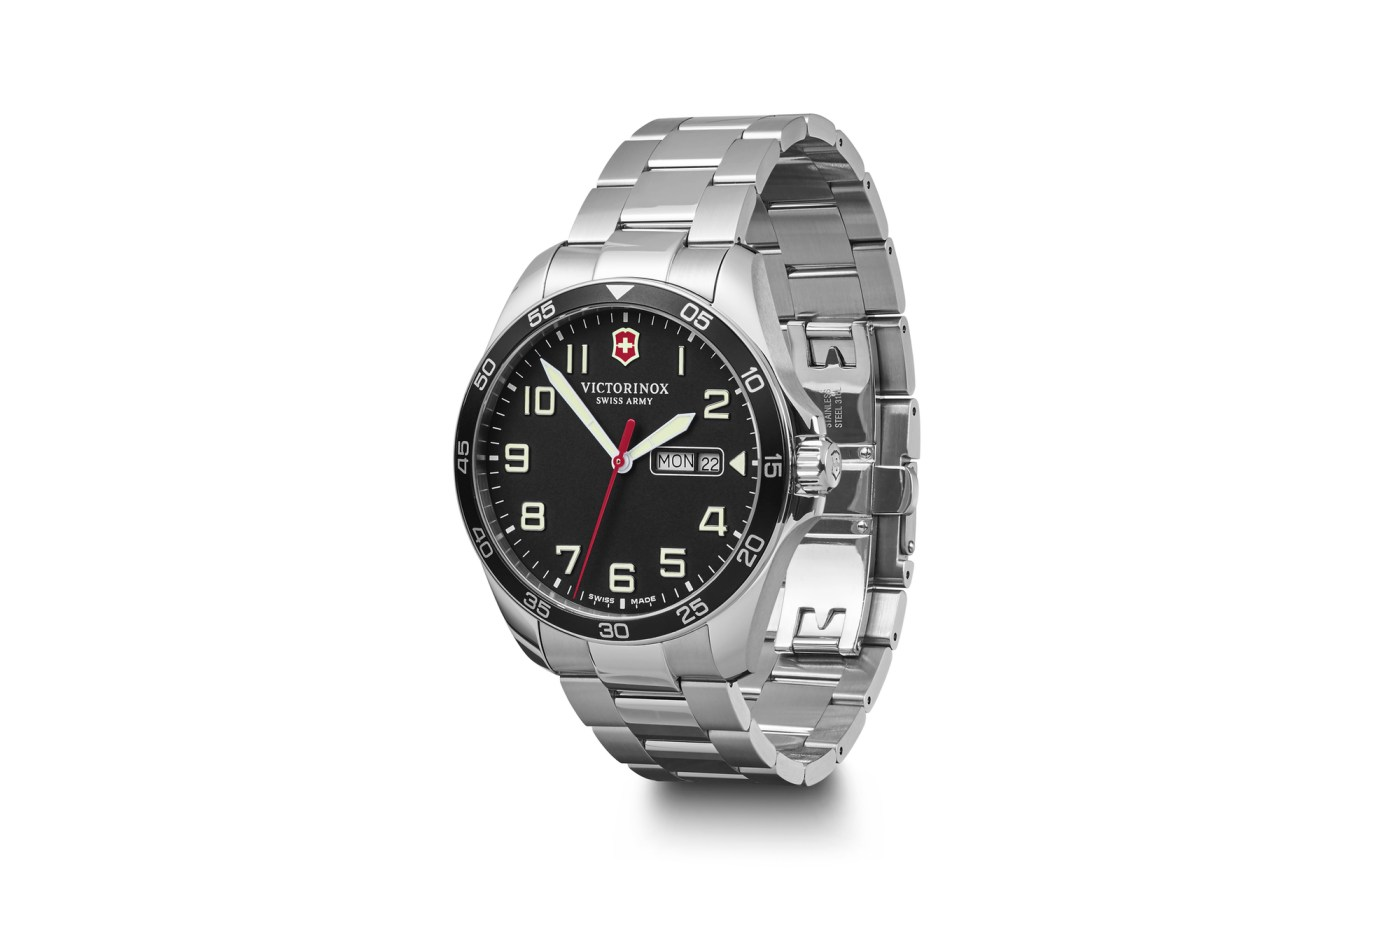 Victorinox FieldForce on stainless steel bracelet